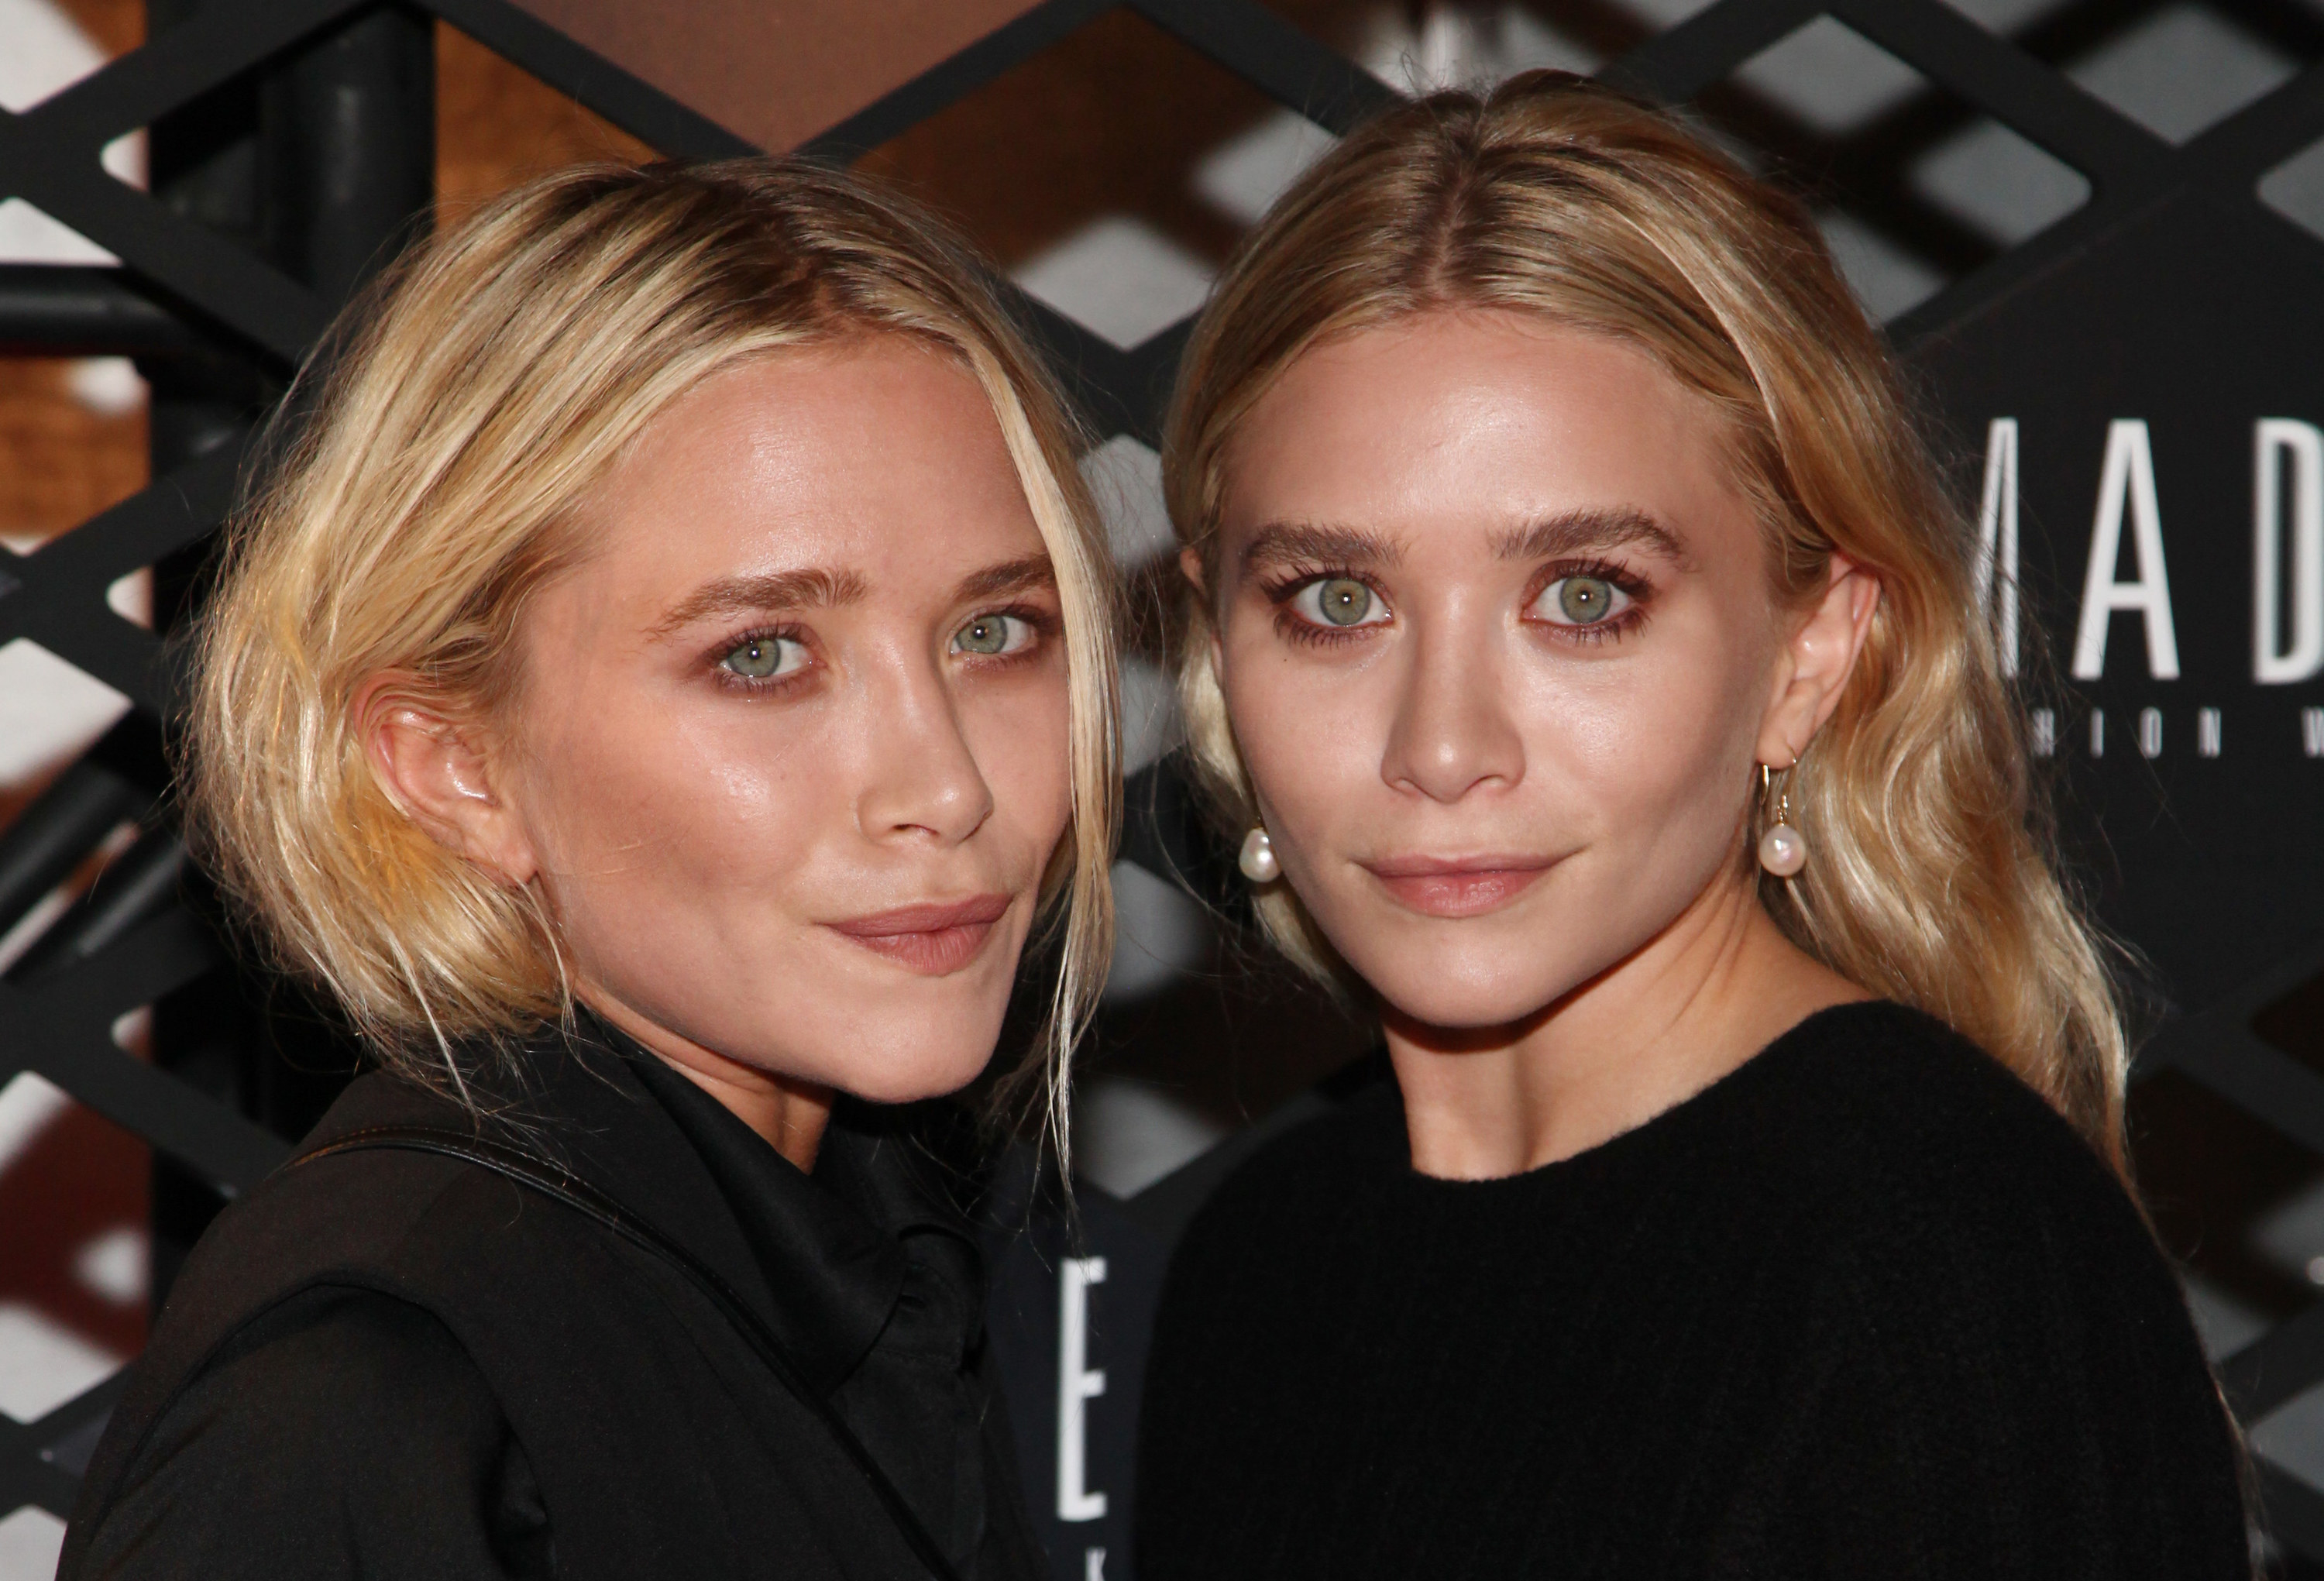 Mary-Kate and Ashley Olsen at a Lexus event in 2013